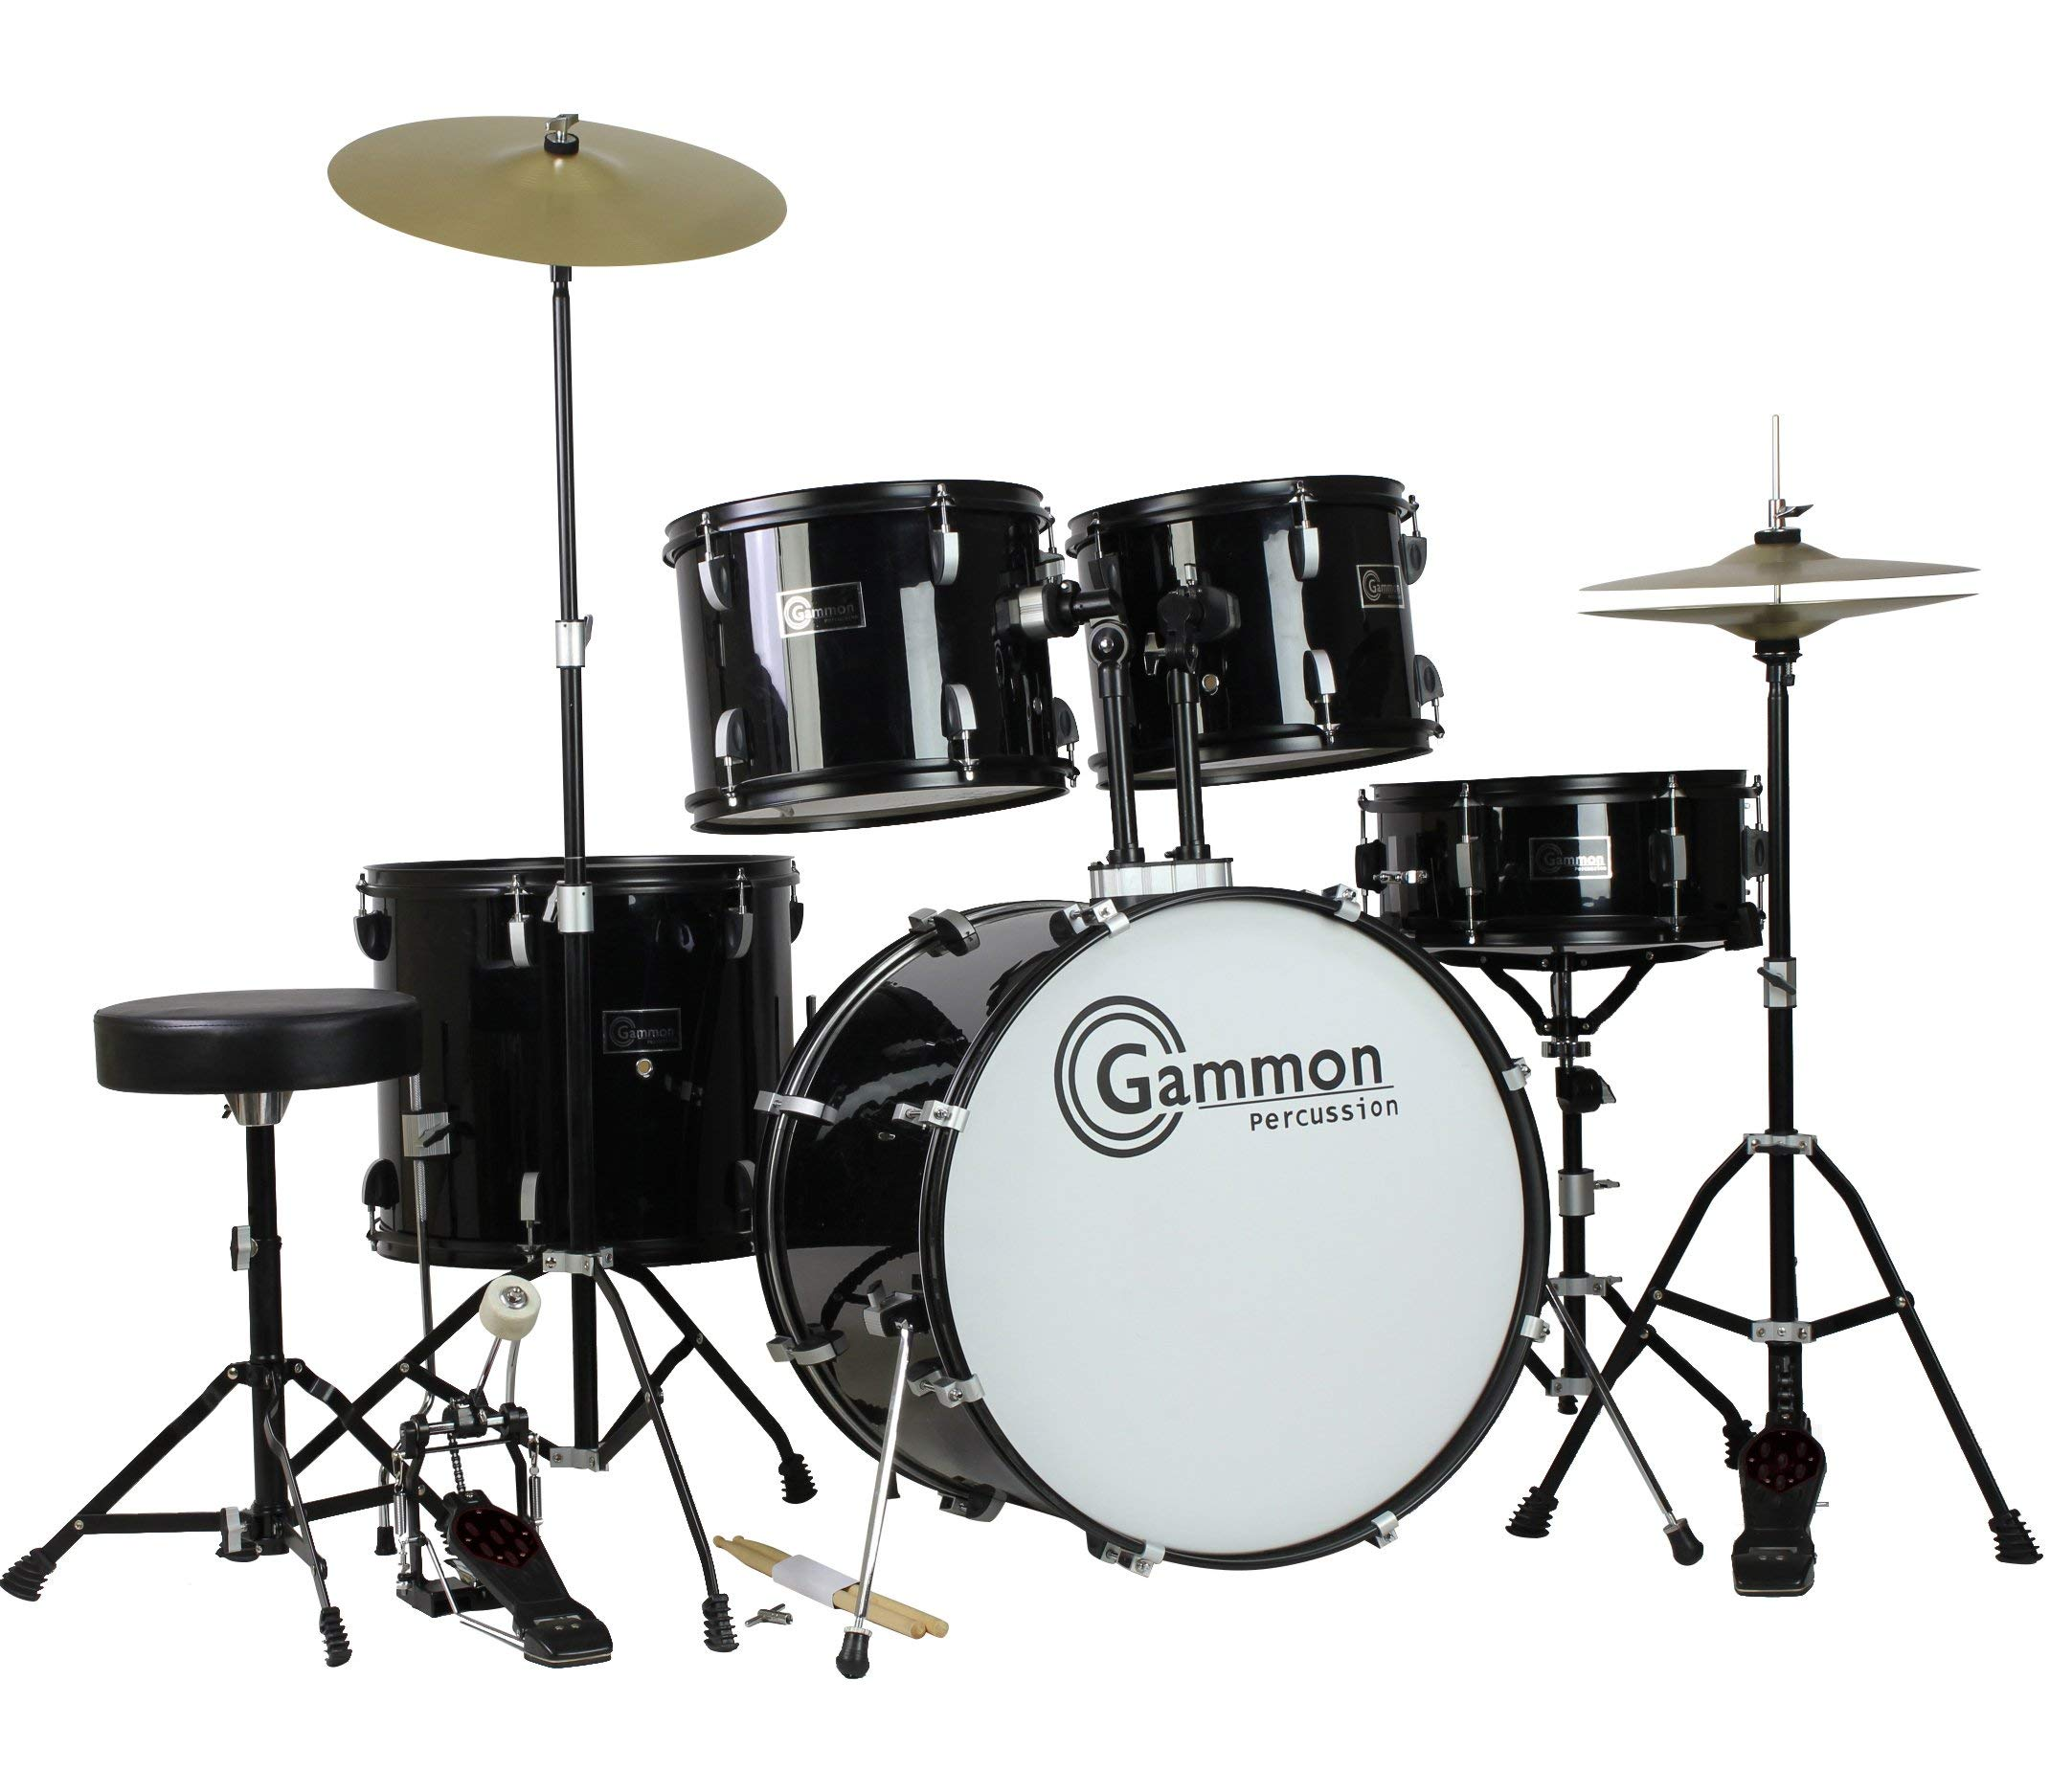 Gammon Percussion Full Size Complete Adult 5 Piece Drum Set with Cymbals Stands Stool and Sticks, Black (Renewed) by Gammon Percussion